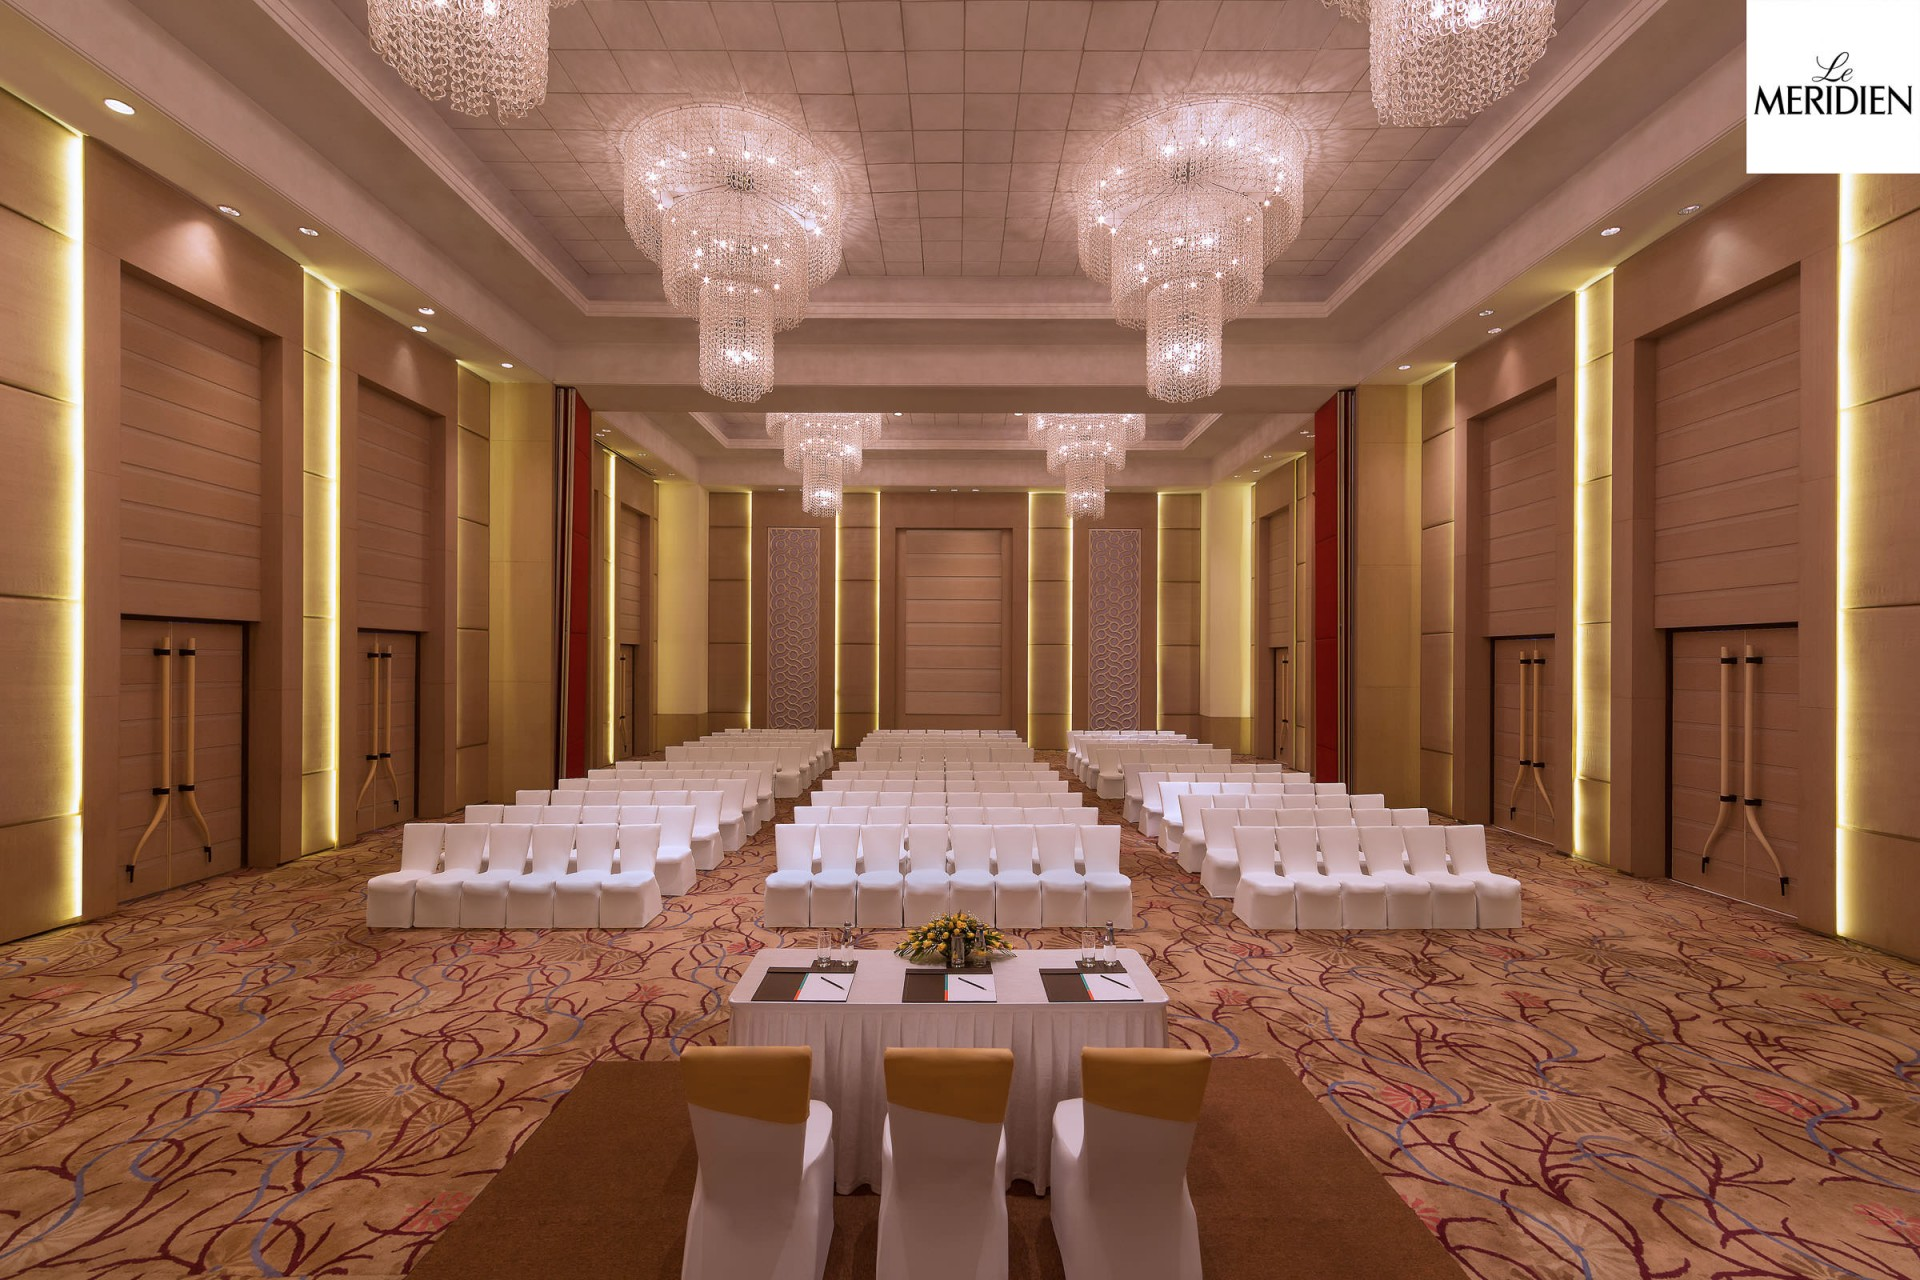 Best Architecture Photographer New Delhi | Le-Meridien Conference Room Banquet Theatre Setting Photography Gurgaon